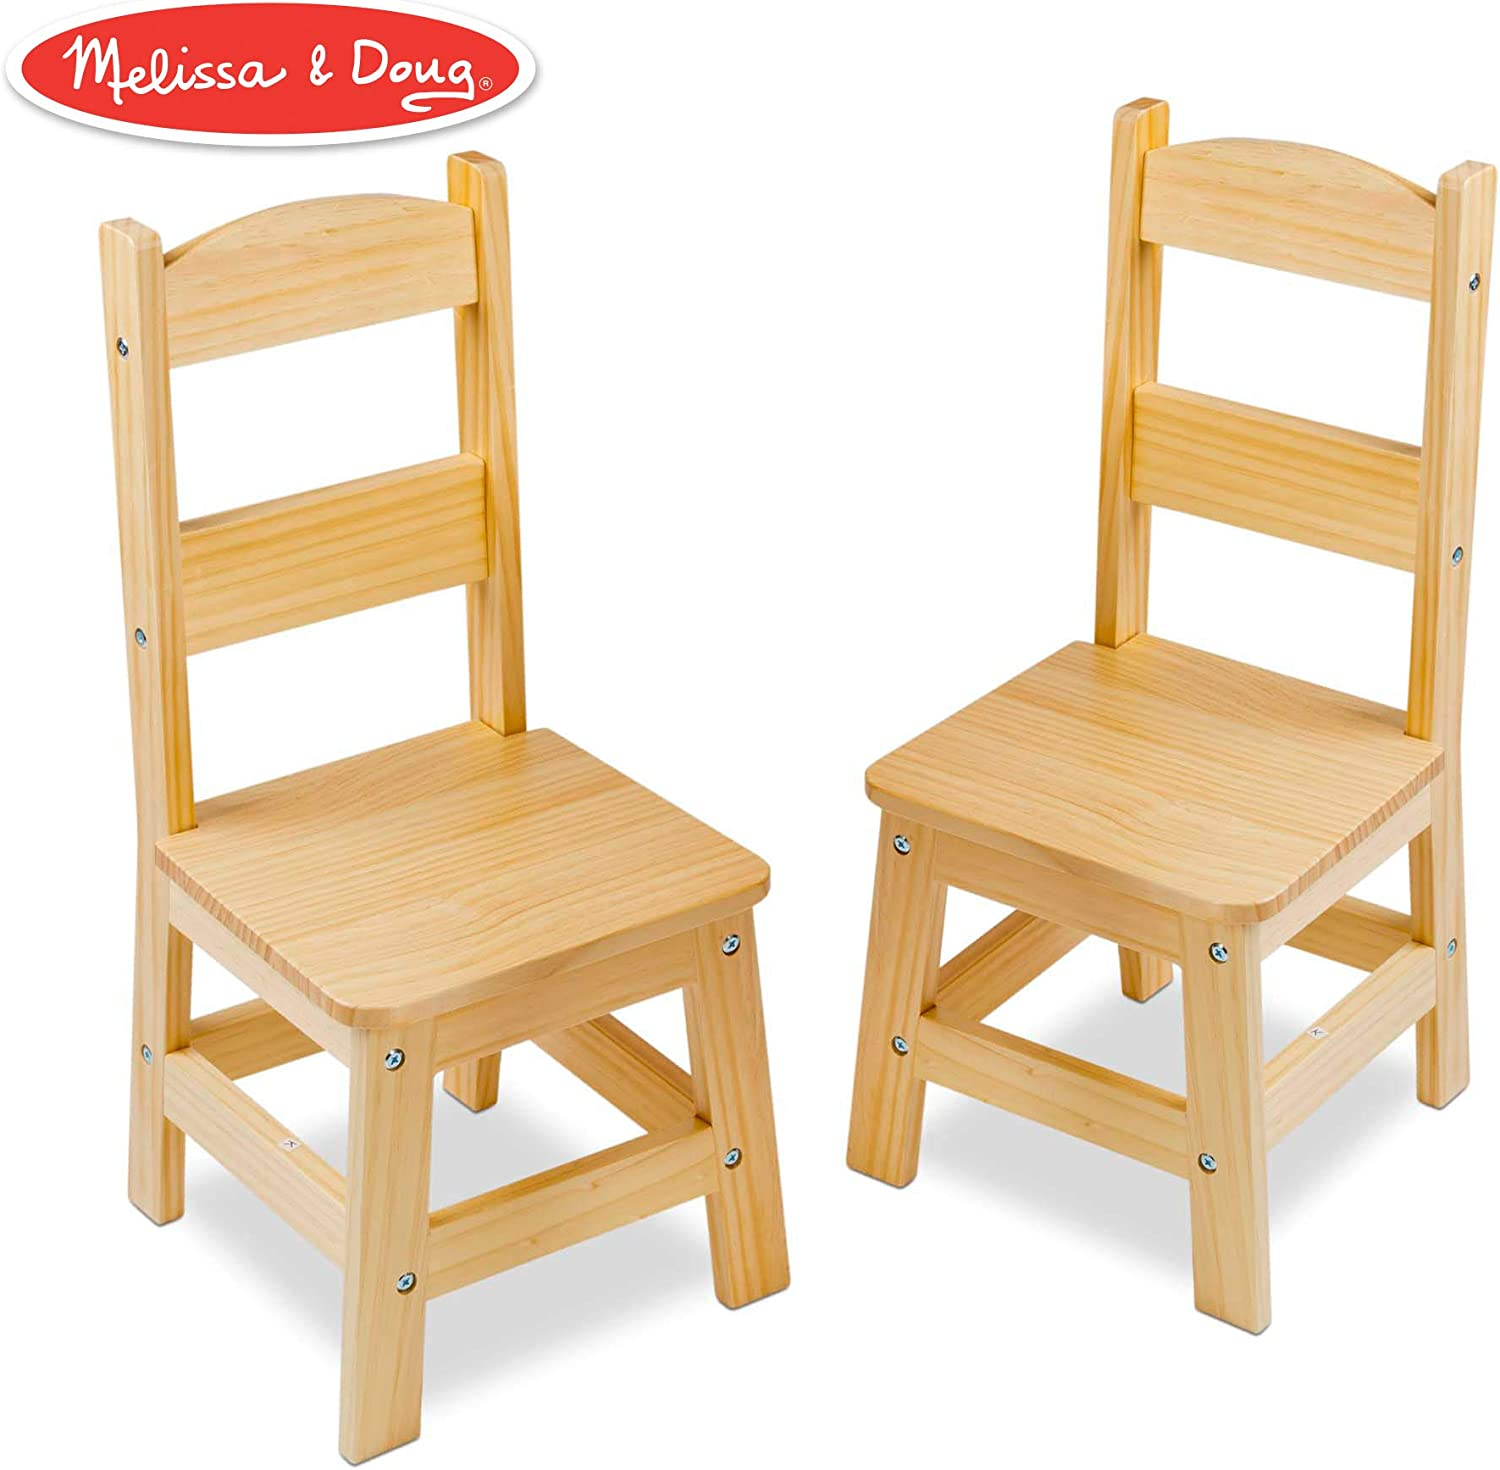 """Melissa & Doug Solid Wood Chairs, Chairs for Kids, Light-Finish Furniture for a Playroom (Durable Construction, Set of 2, 28"""" H x 15.2"""" W x 4"""" L)"""